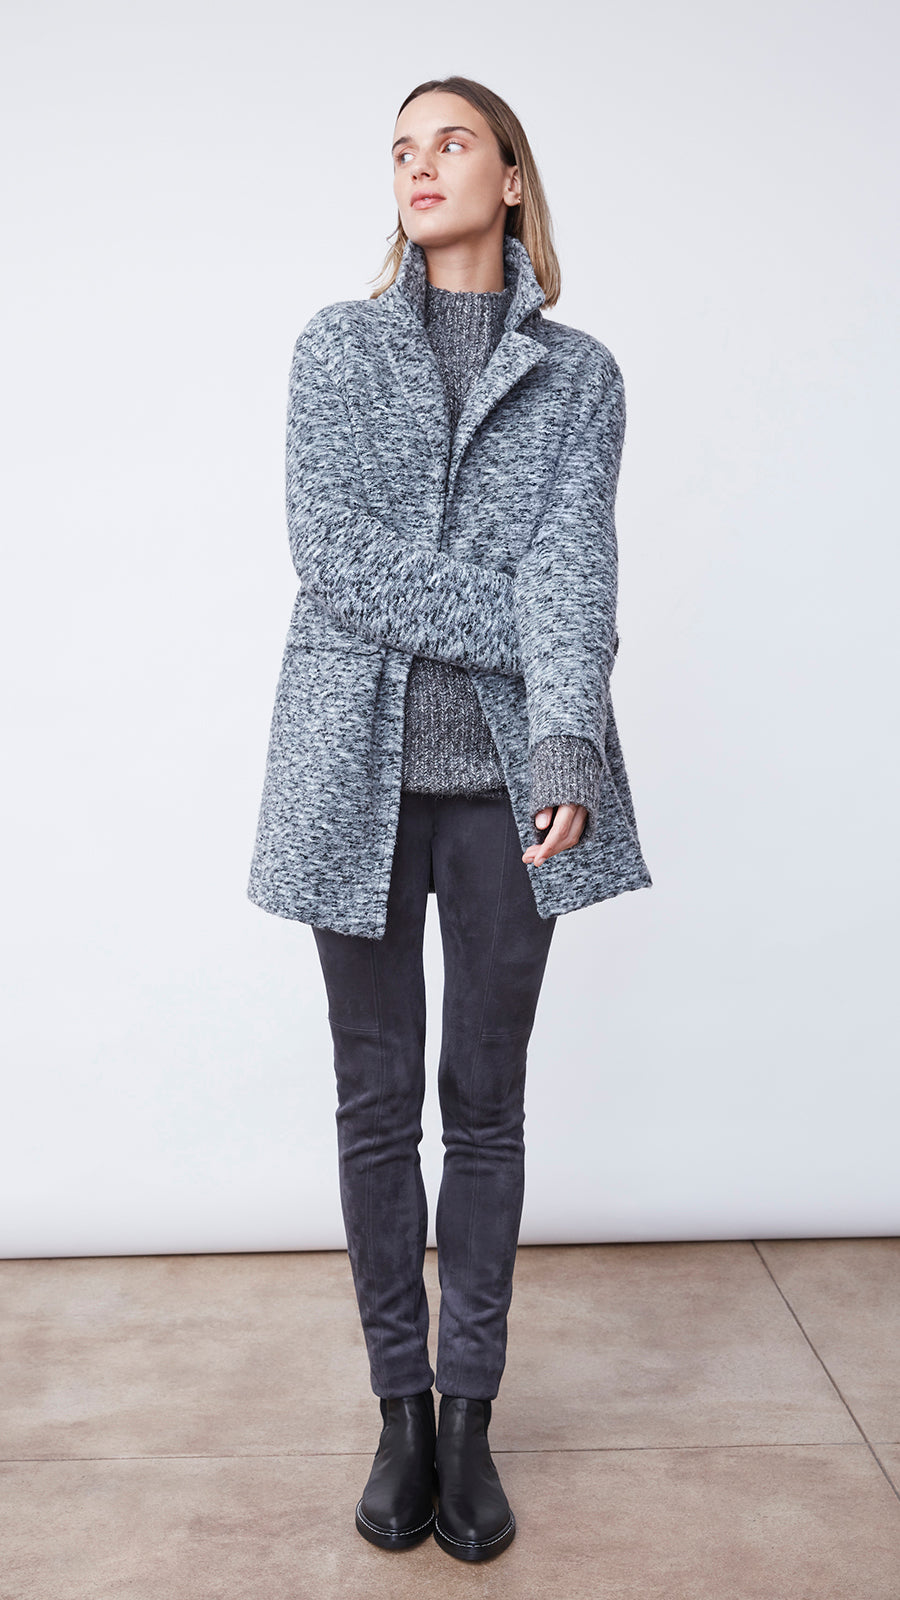 Women's Textured Soft Coat in Charcoal by b new york